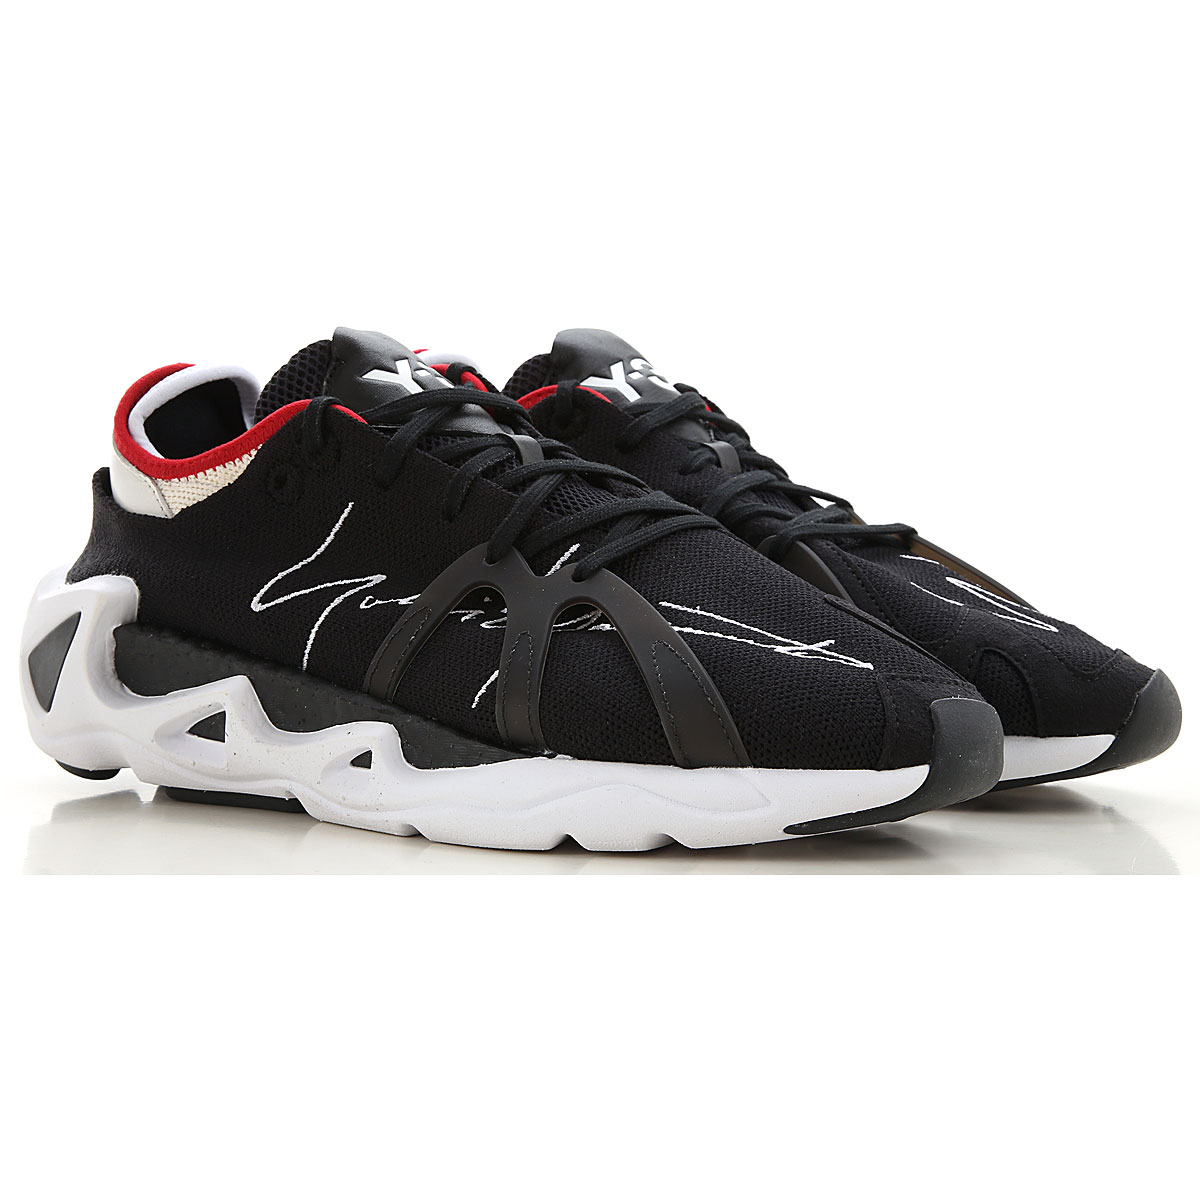 Y3 by Yohji Yamamoto Sneakers for Men On Sale, Black, Textile, 2019, 11 11.5 9 9.5